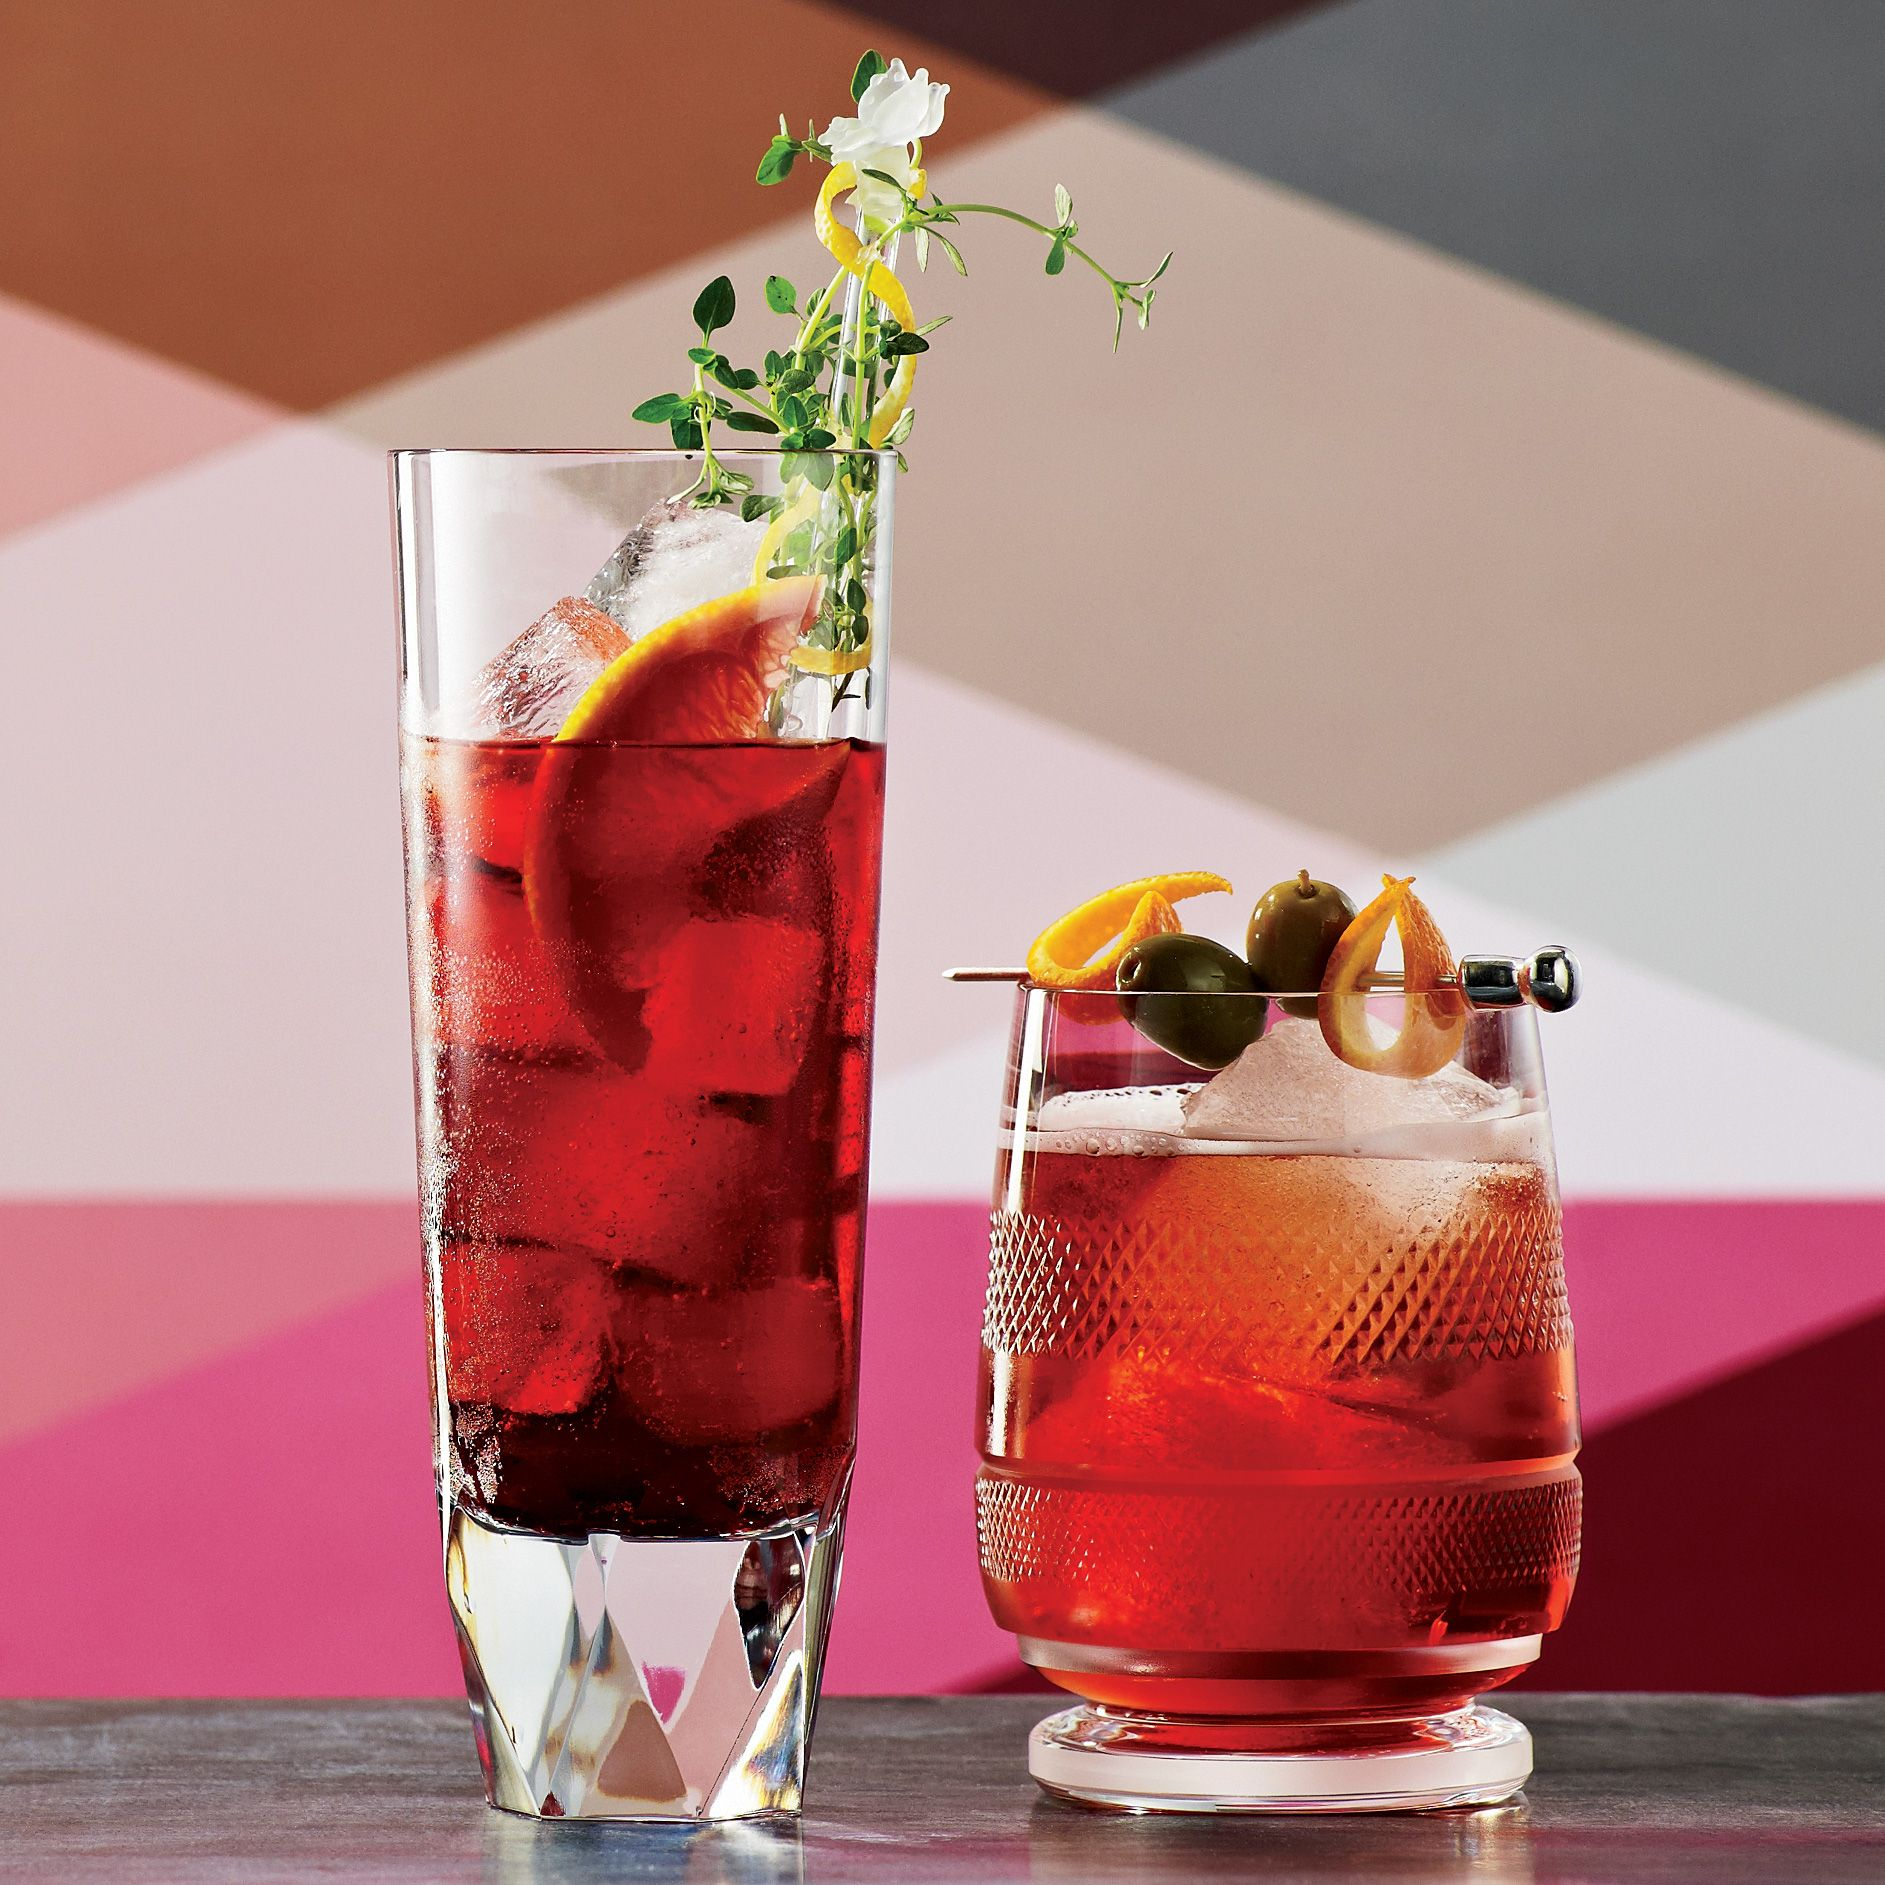 Americano Cocktail In 2020 Yummy Chicken Recipes Italian Cocktail Recipes Italian Cocktails